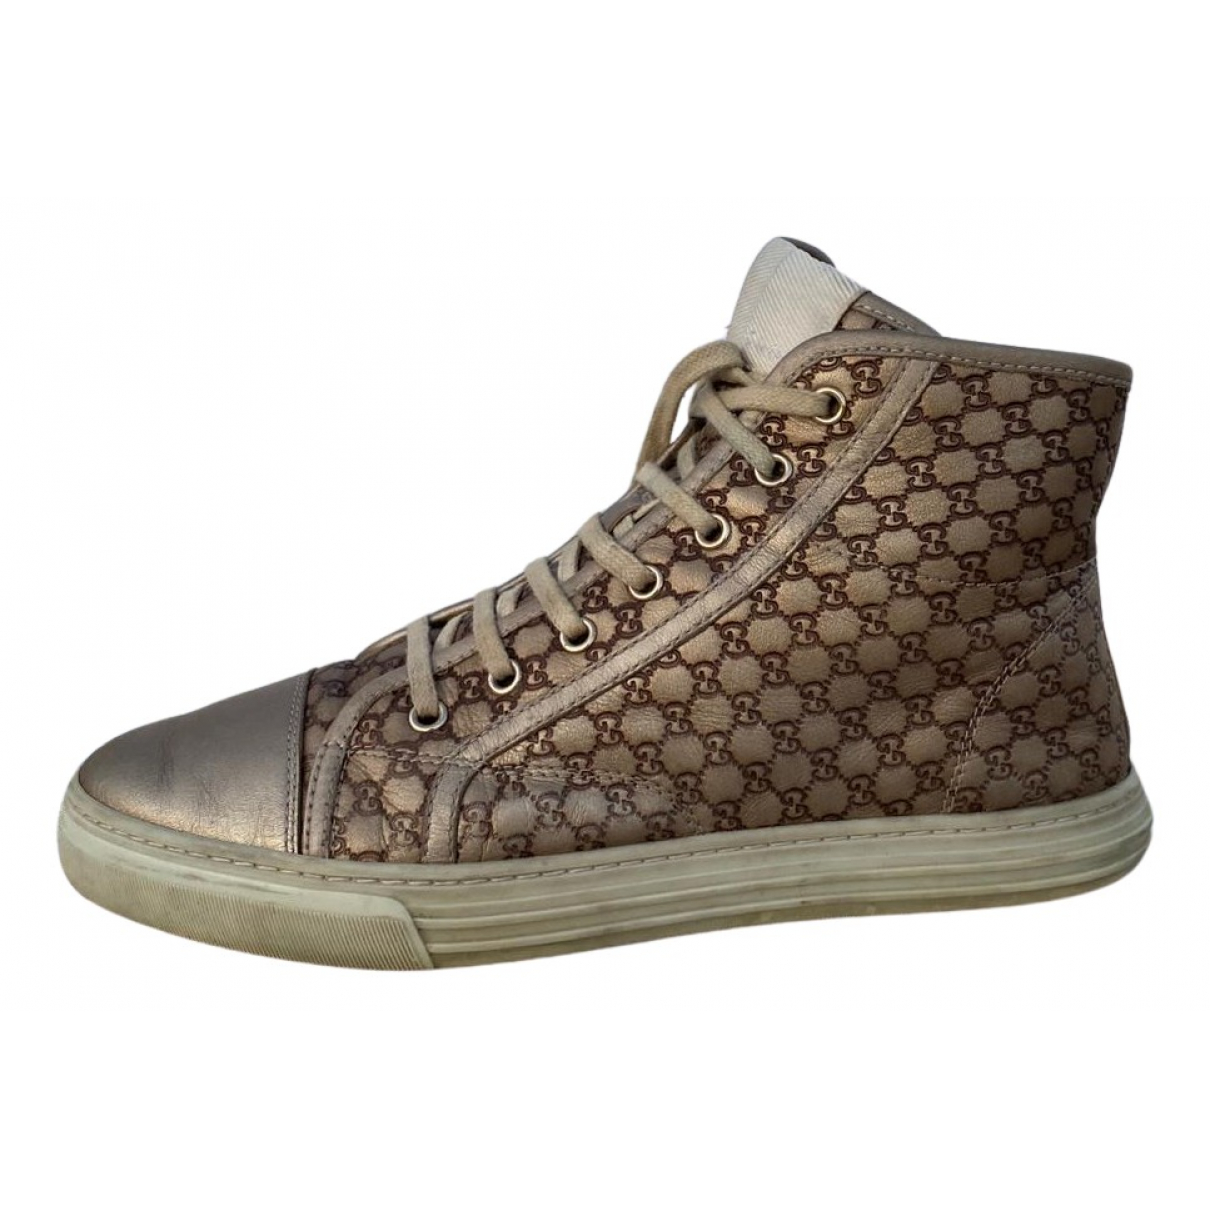 Gucci N Beige Leather Trainers for Women 38.5 IT